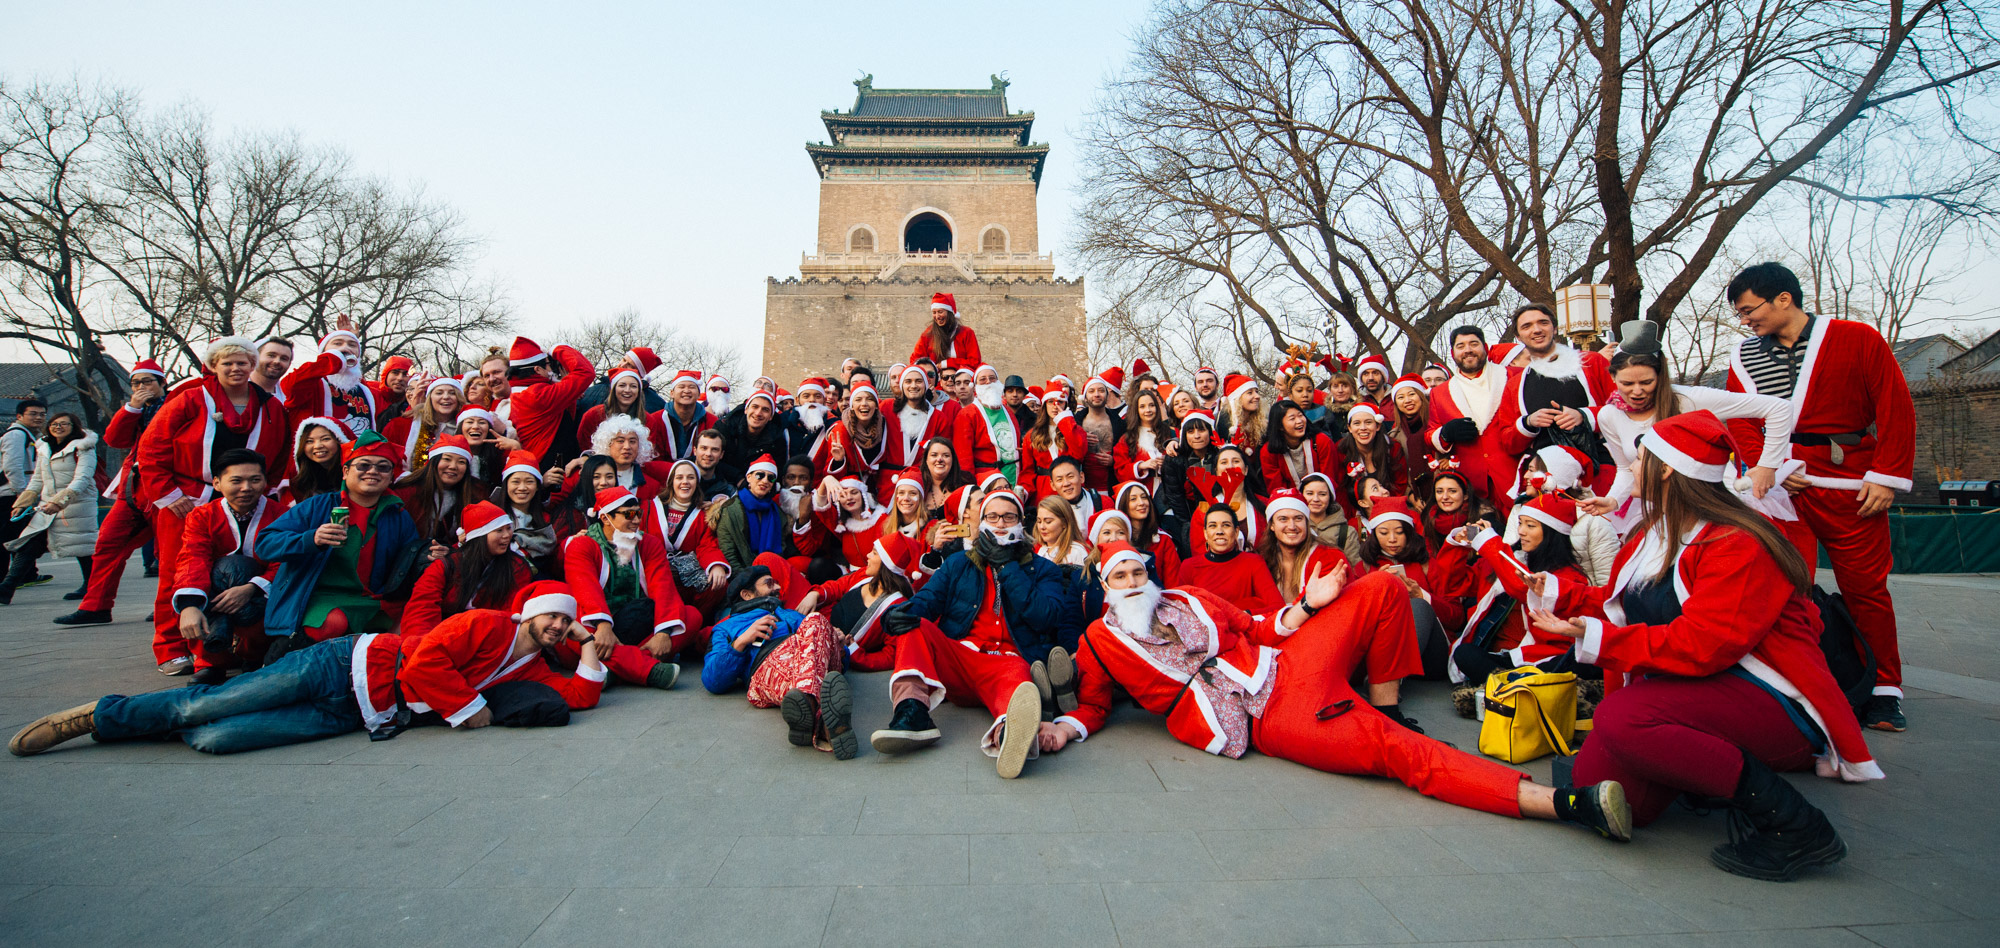 Group photo in front of the Bell Tower (Zhong lou).